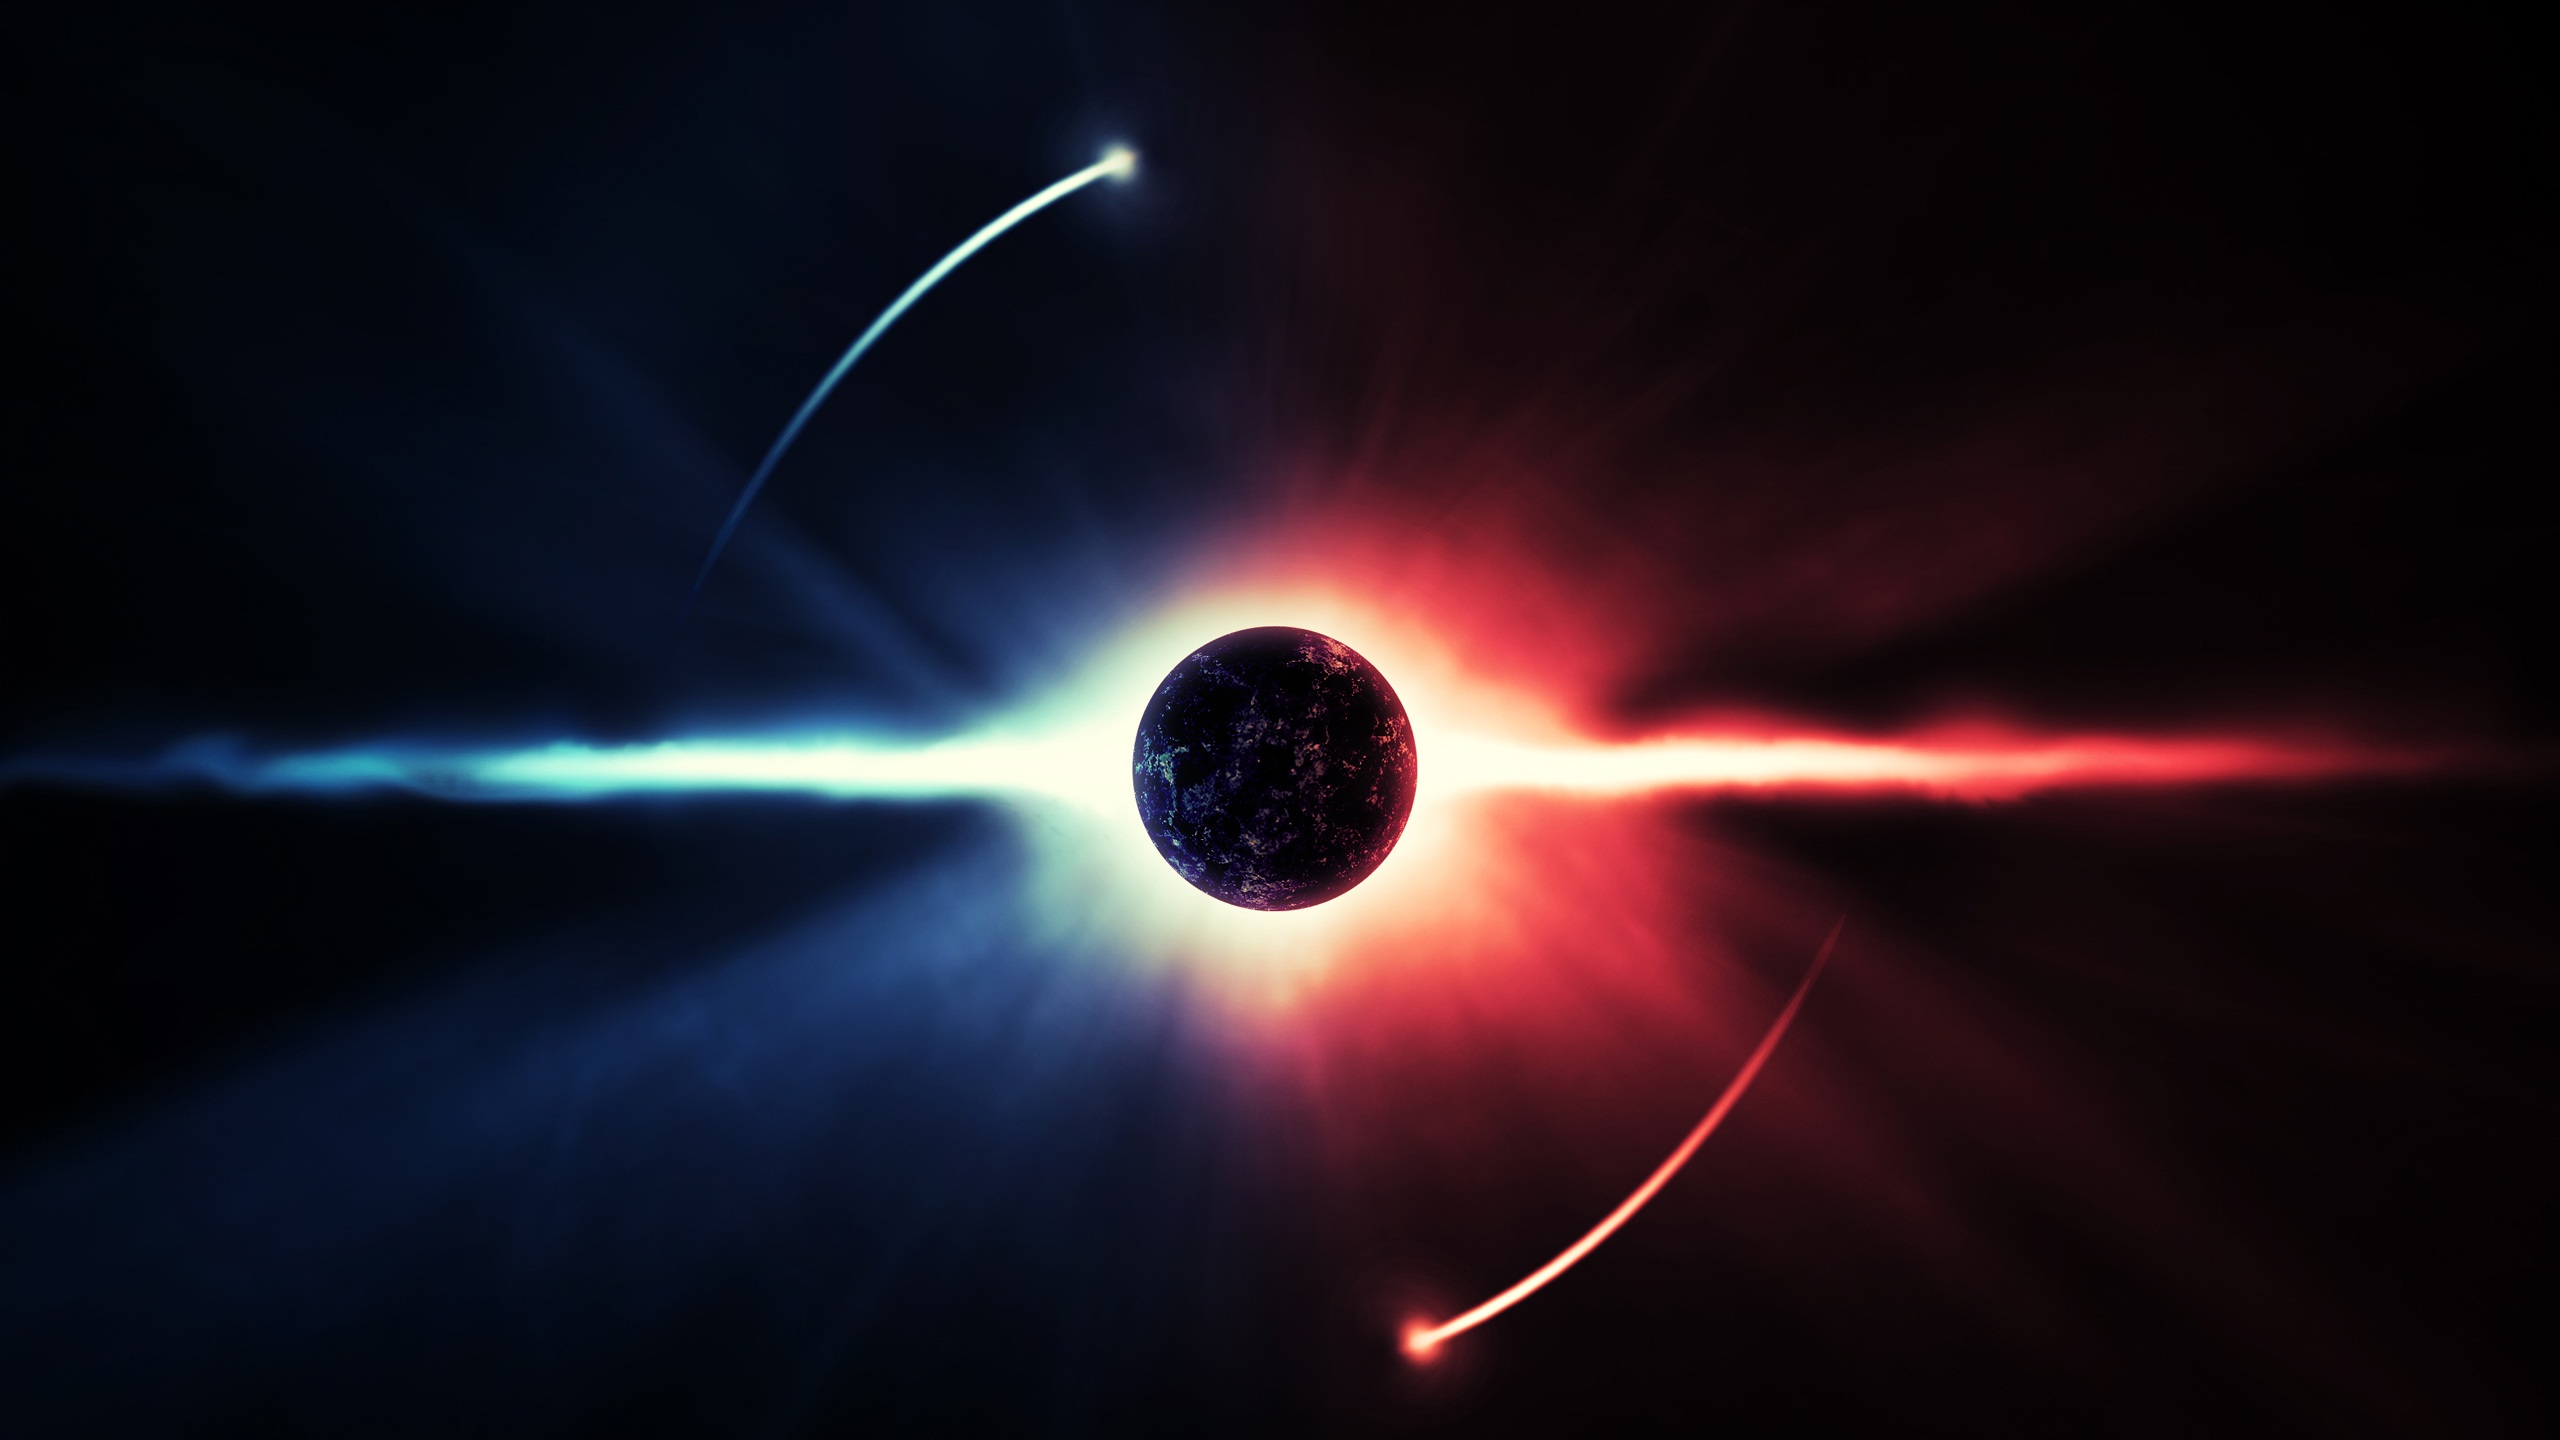 The planet energy light space Wallpaper | 2560x1440 QHD resolution ...